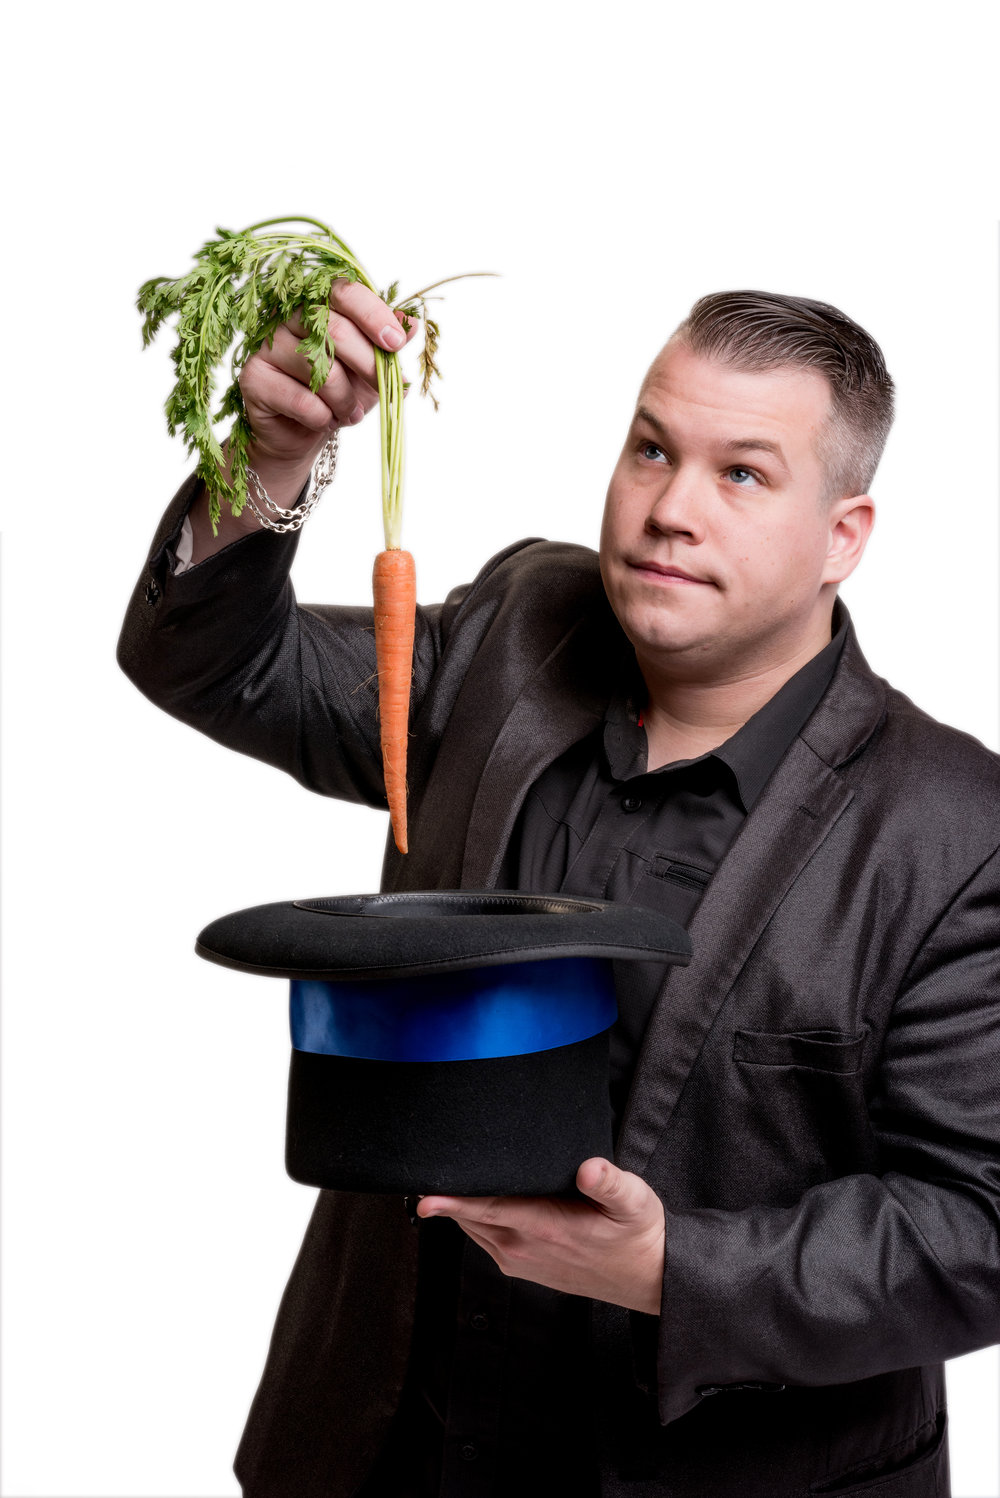 Bill_Cook_Carrot_2.jpg